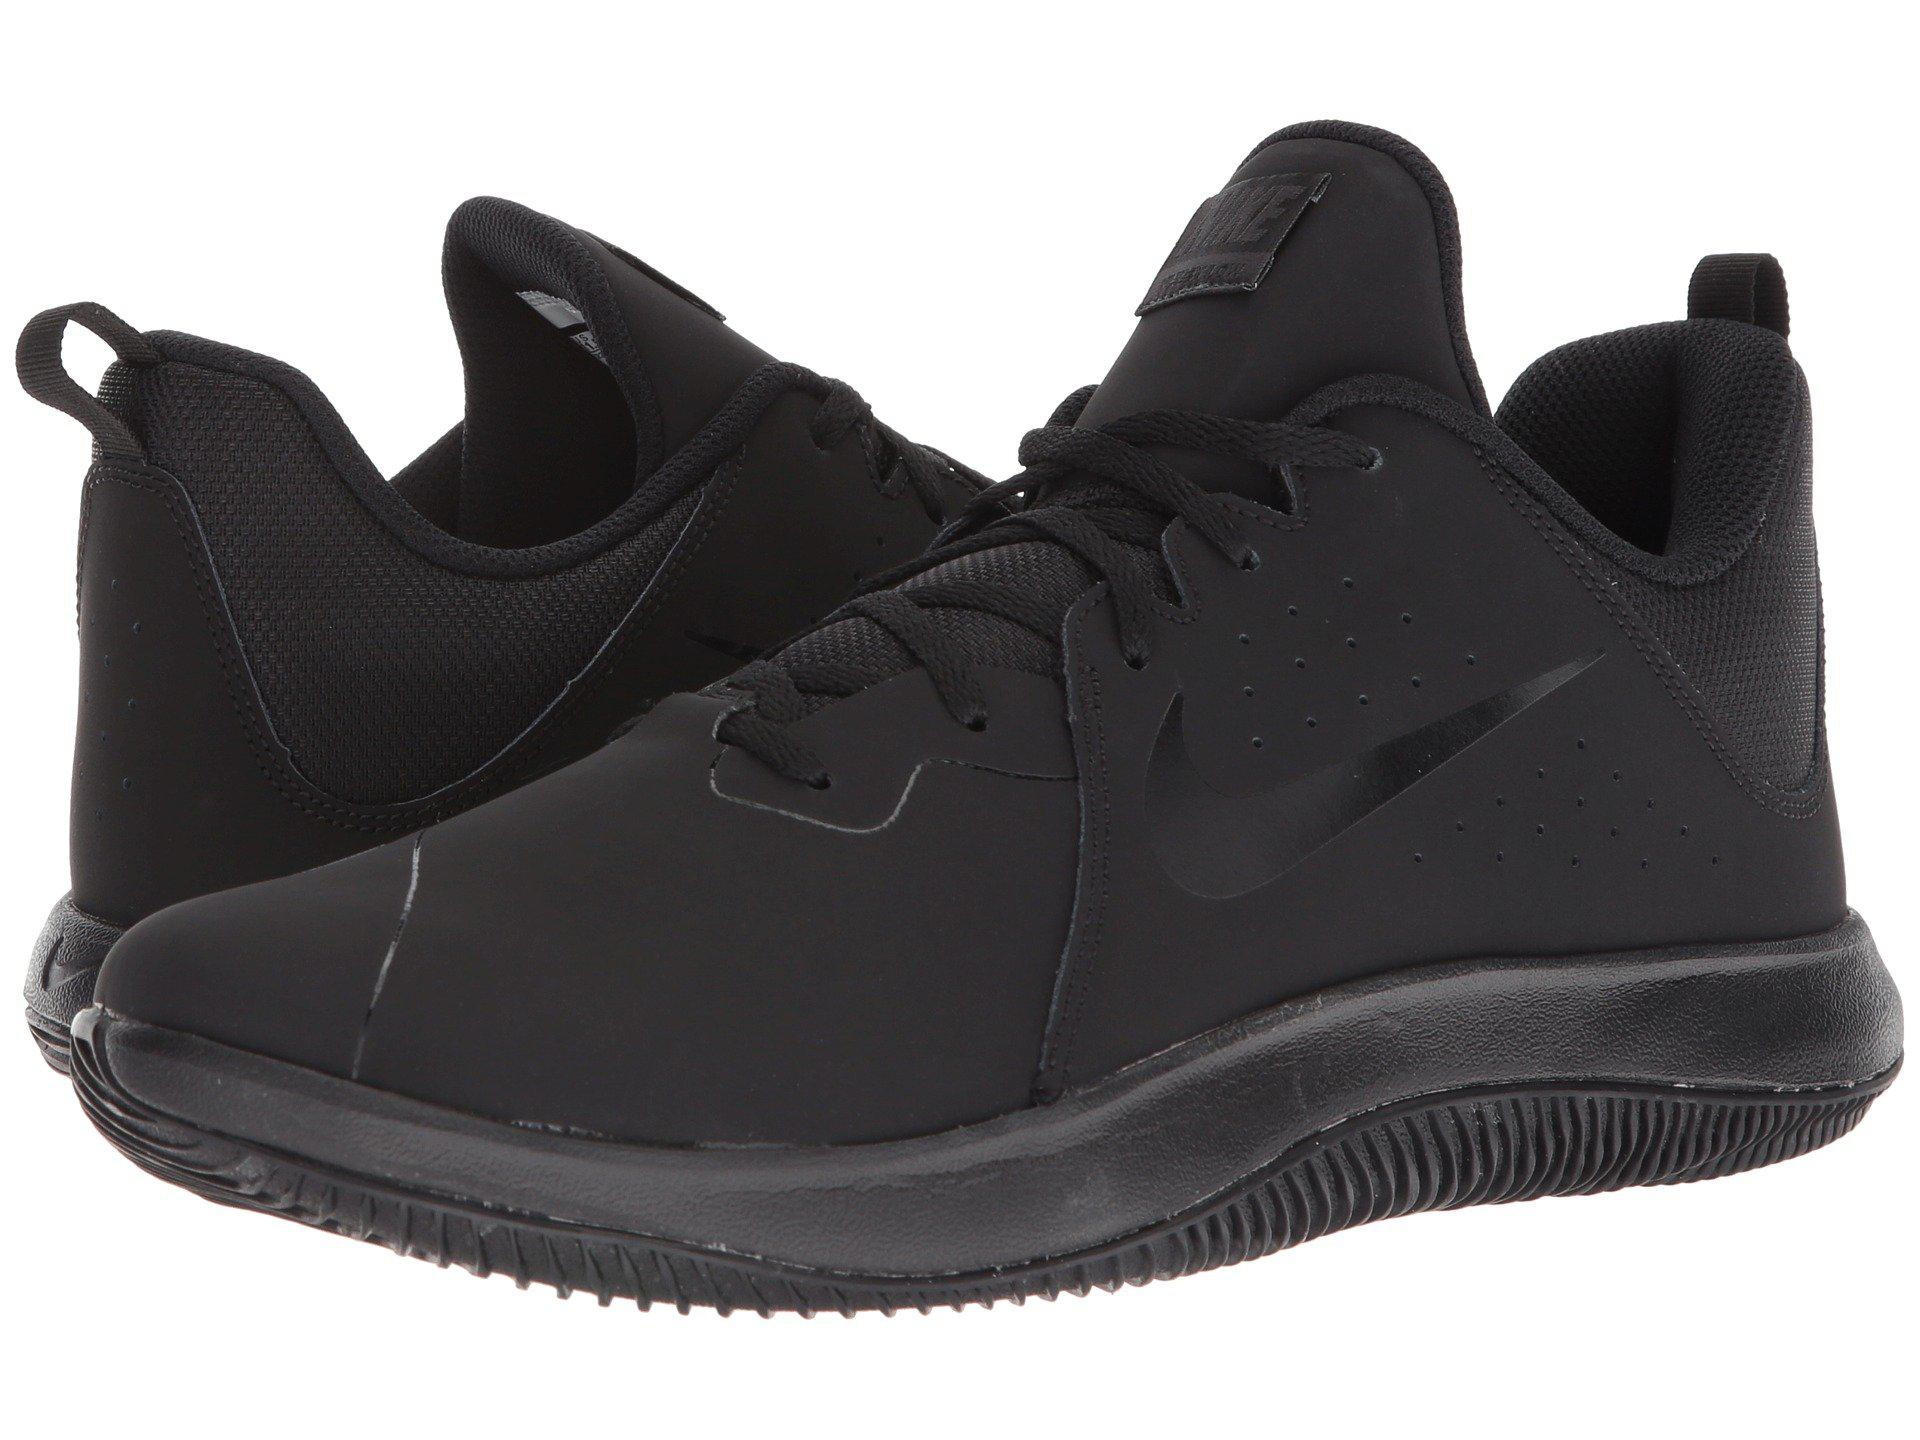 92ea9428215 Lyst - Nike Fly. By Low Nbk (black anthracite) Men s Basketball ...